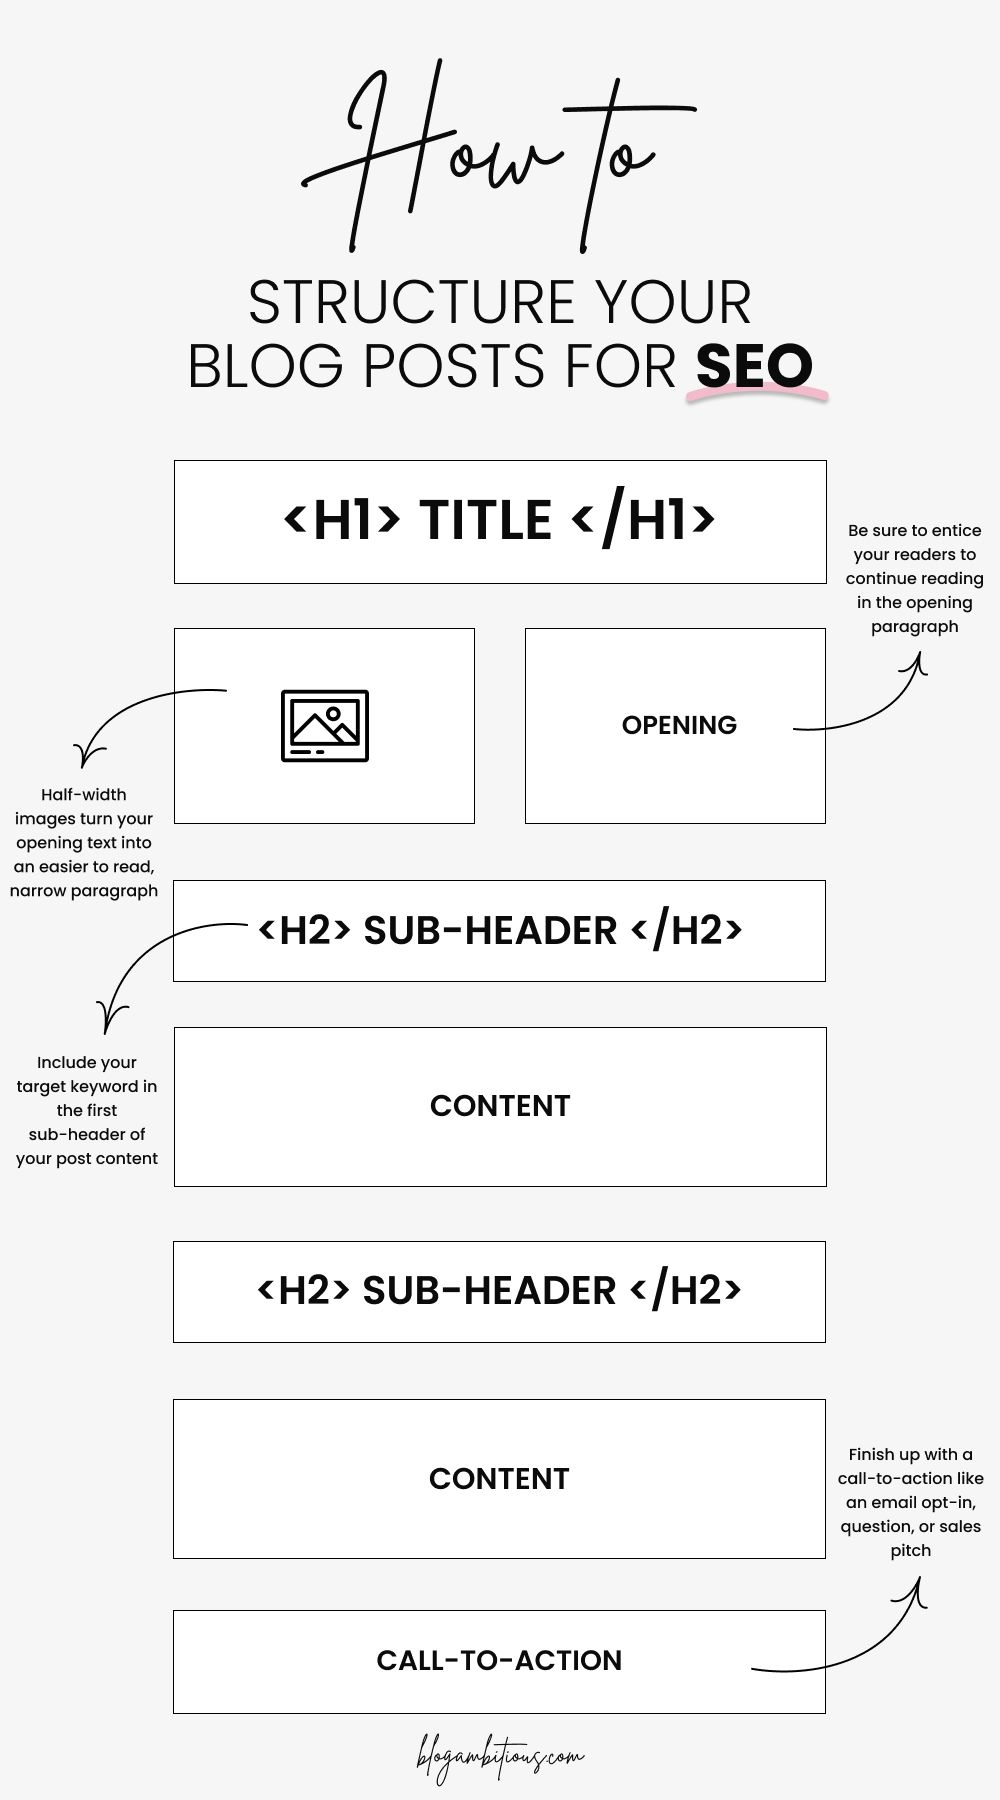 How To Structure Your Blog Posts For SEO – How to Write and Structure a Blog Post Your Readers and Google Will Love